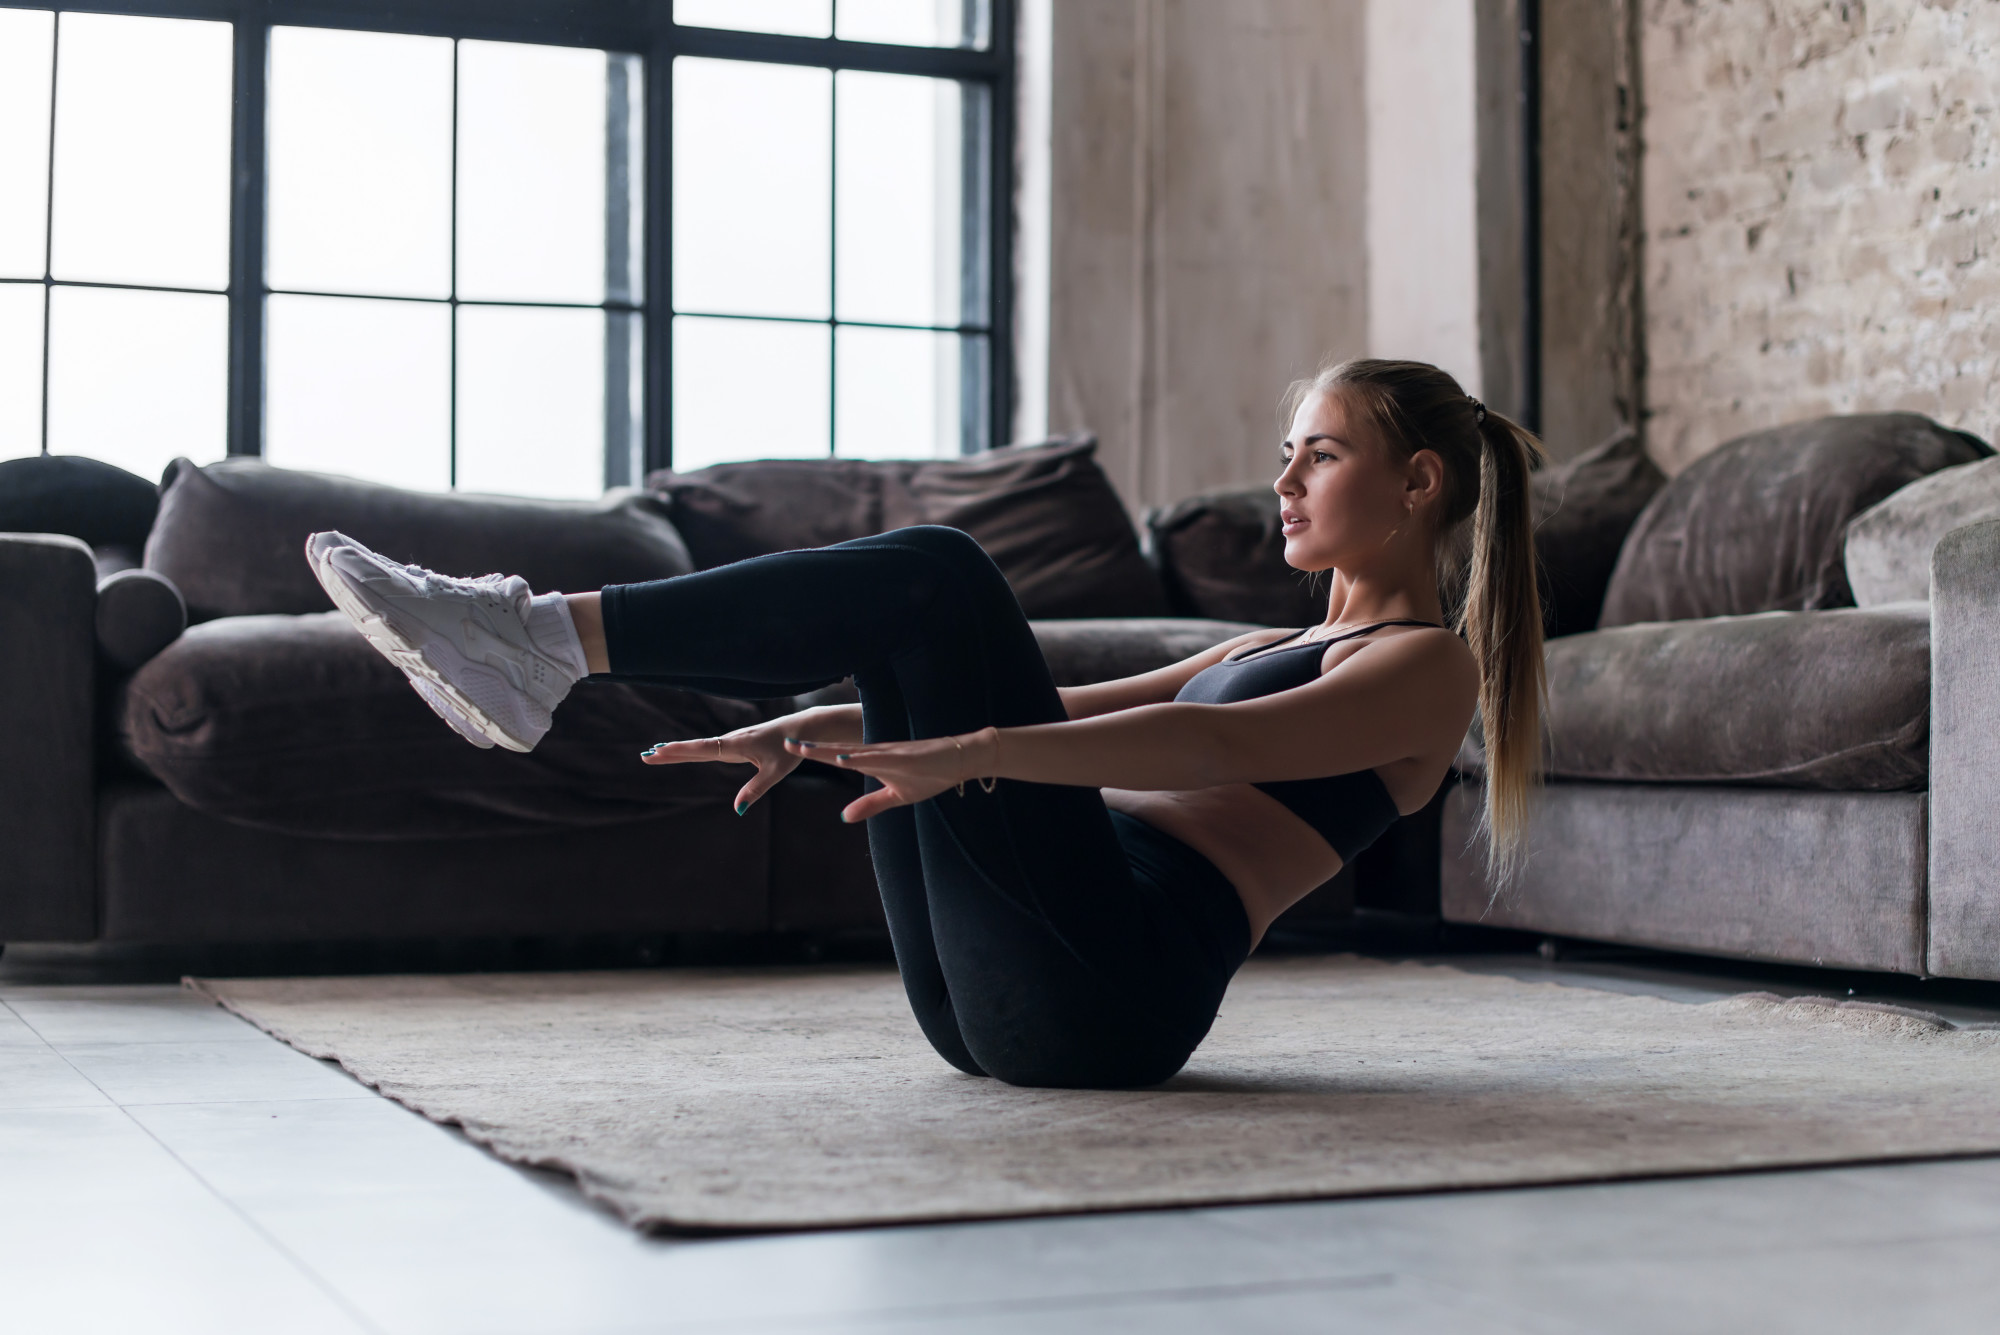 Get in shape at home with these no-equipment-needed exercises.